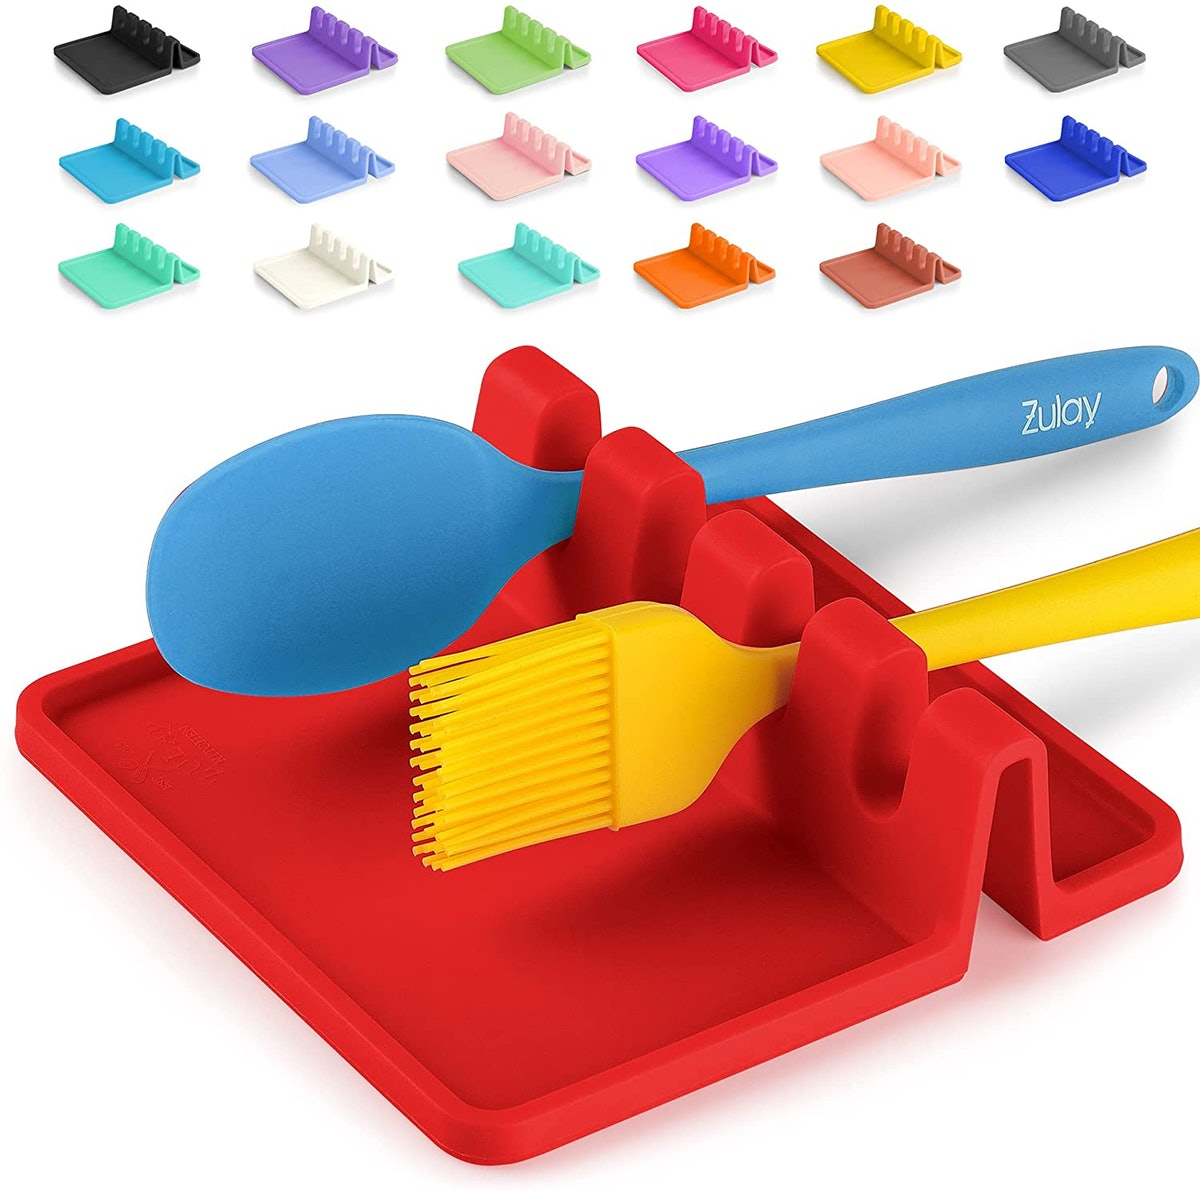 Silicone Utensil Rest with Drip Pad